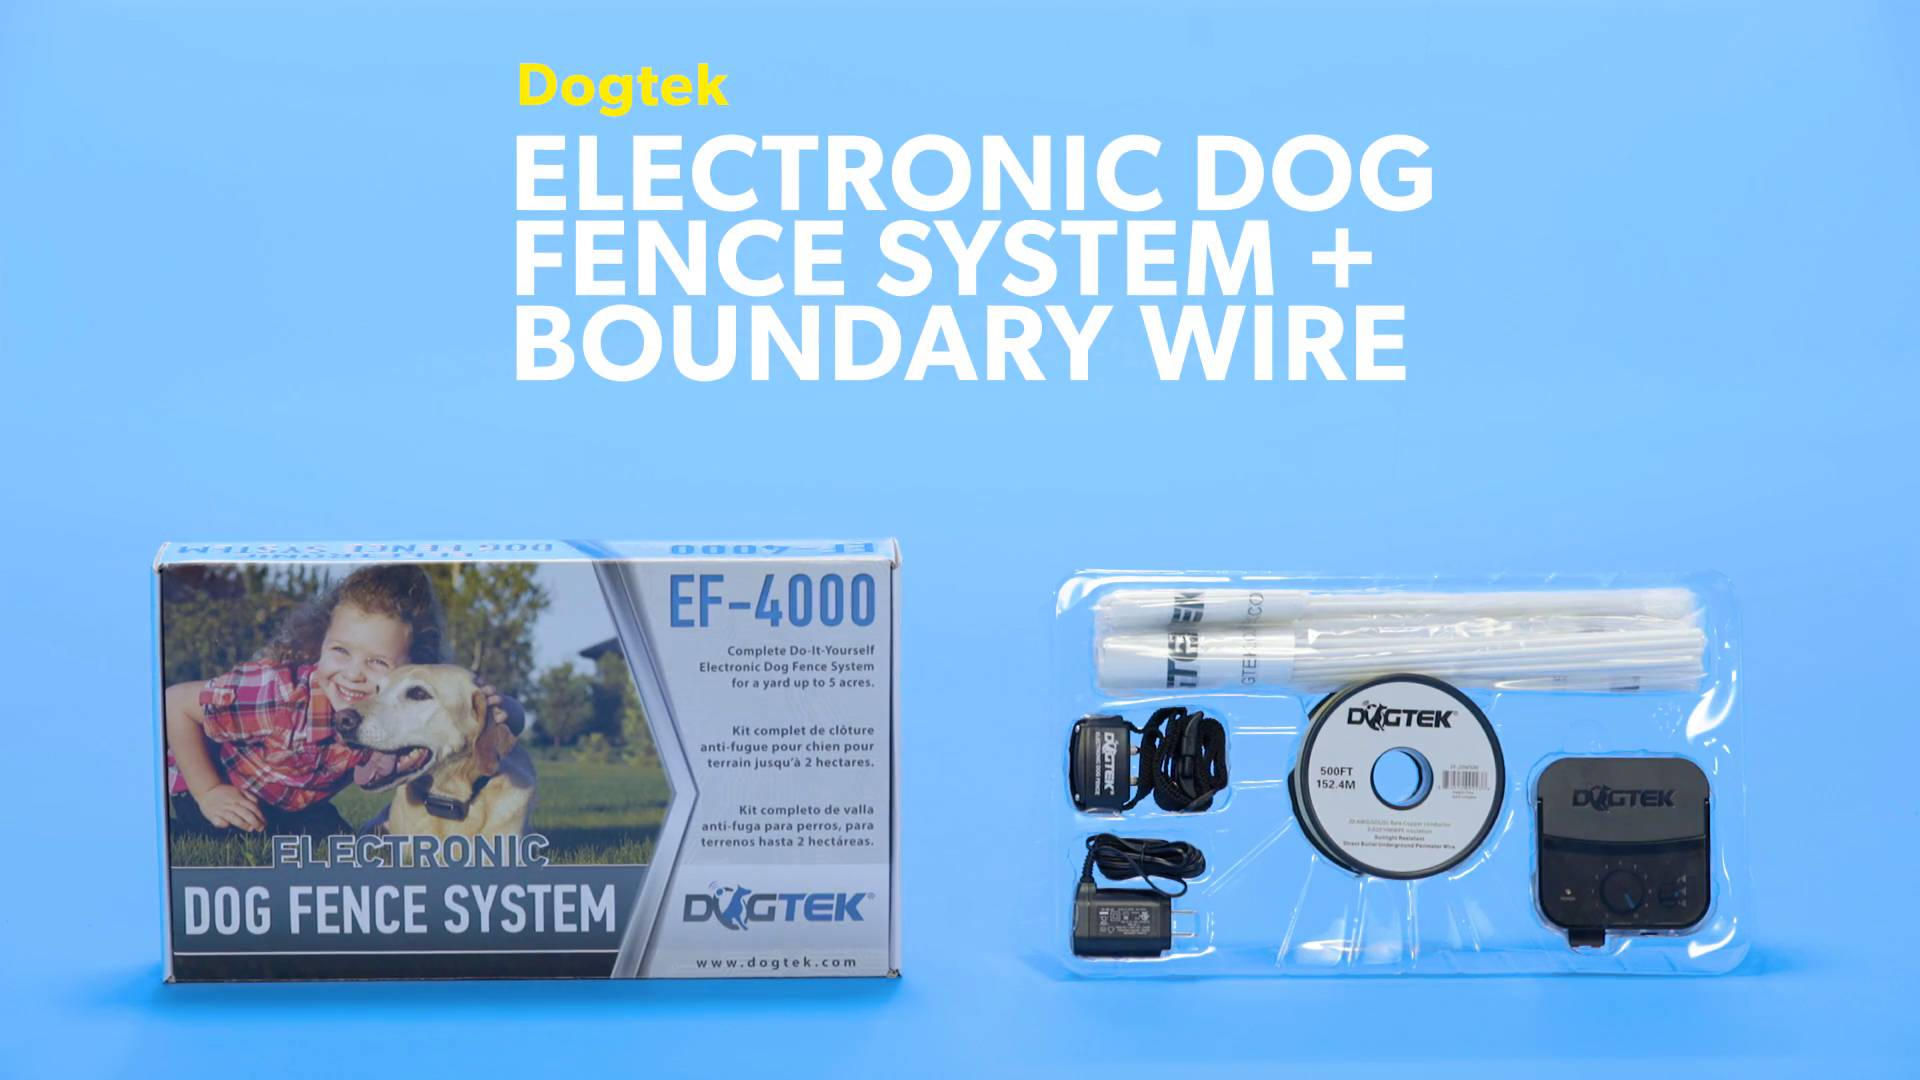 Dogtek Electronic Dog Fence System - Chewy.com